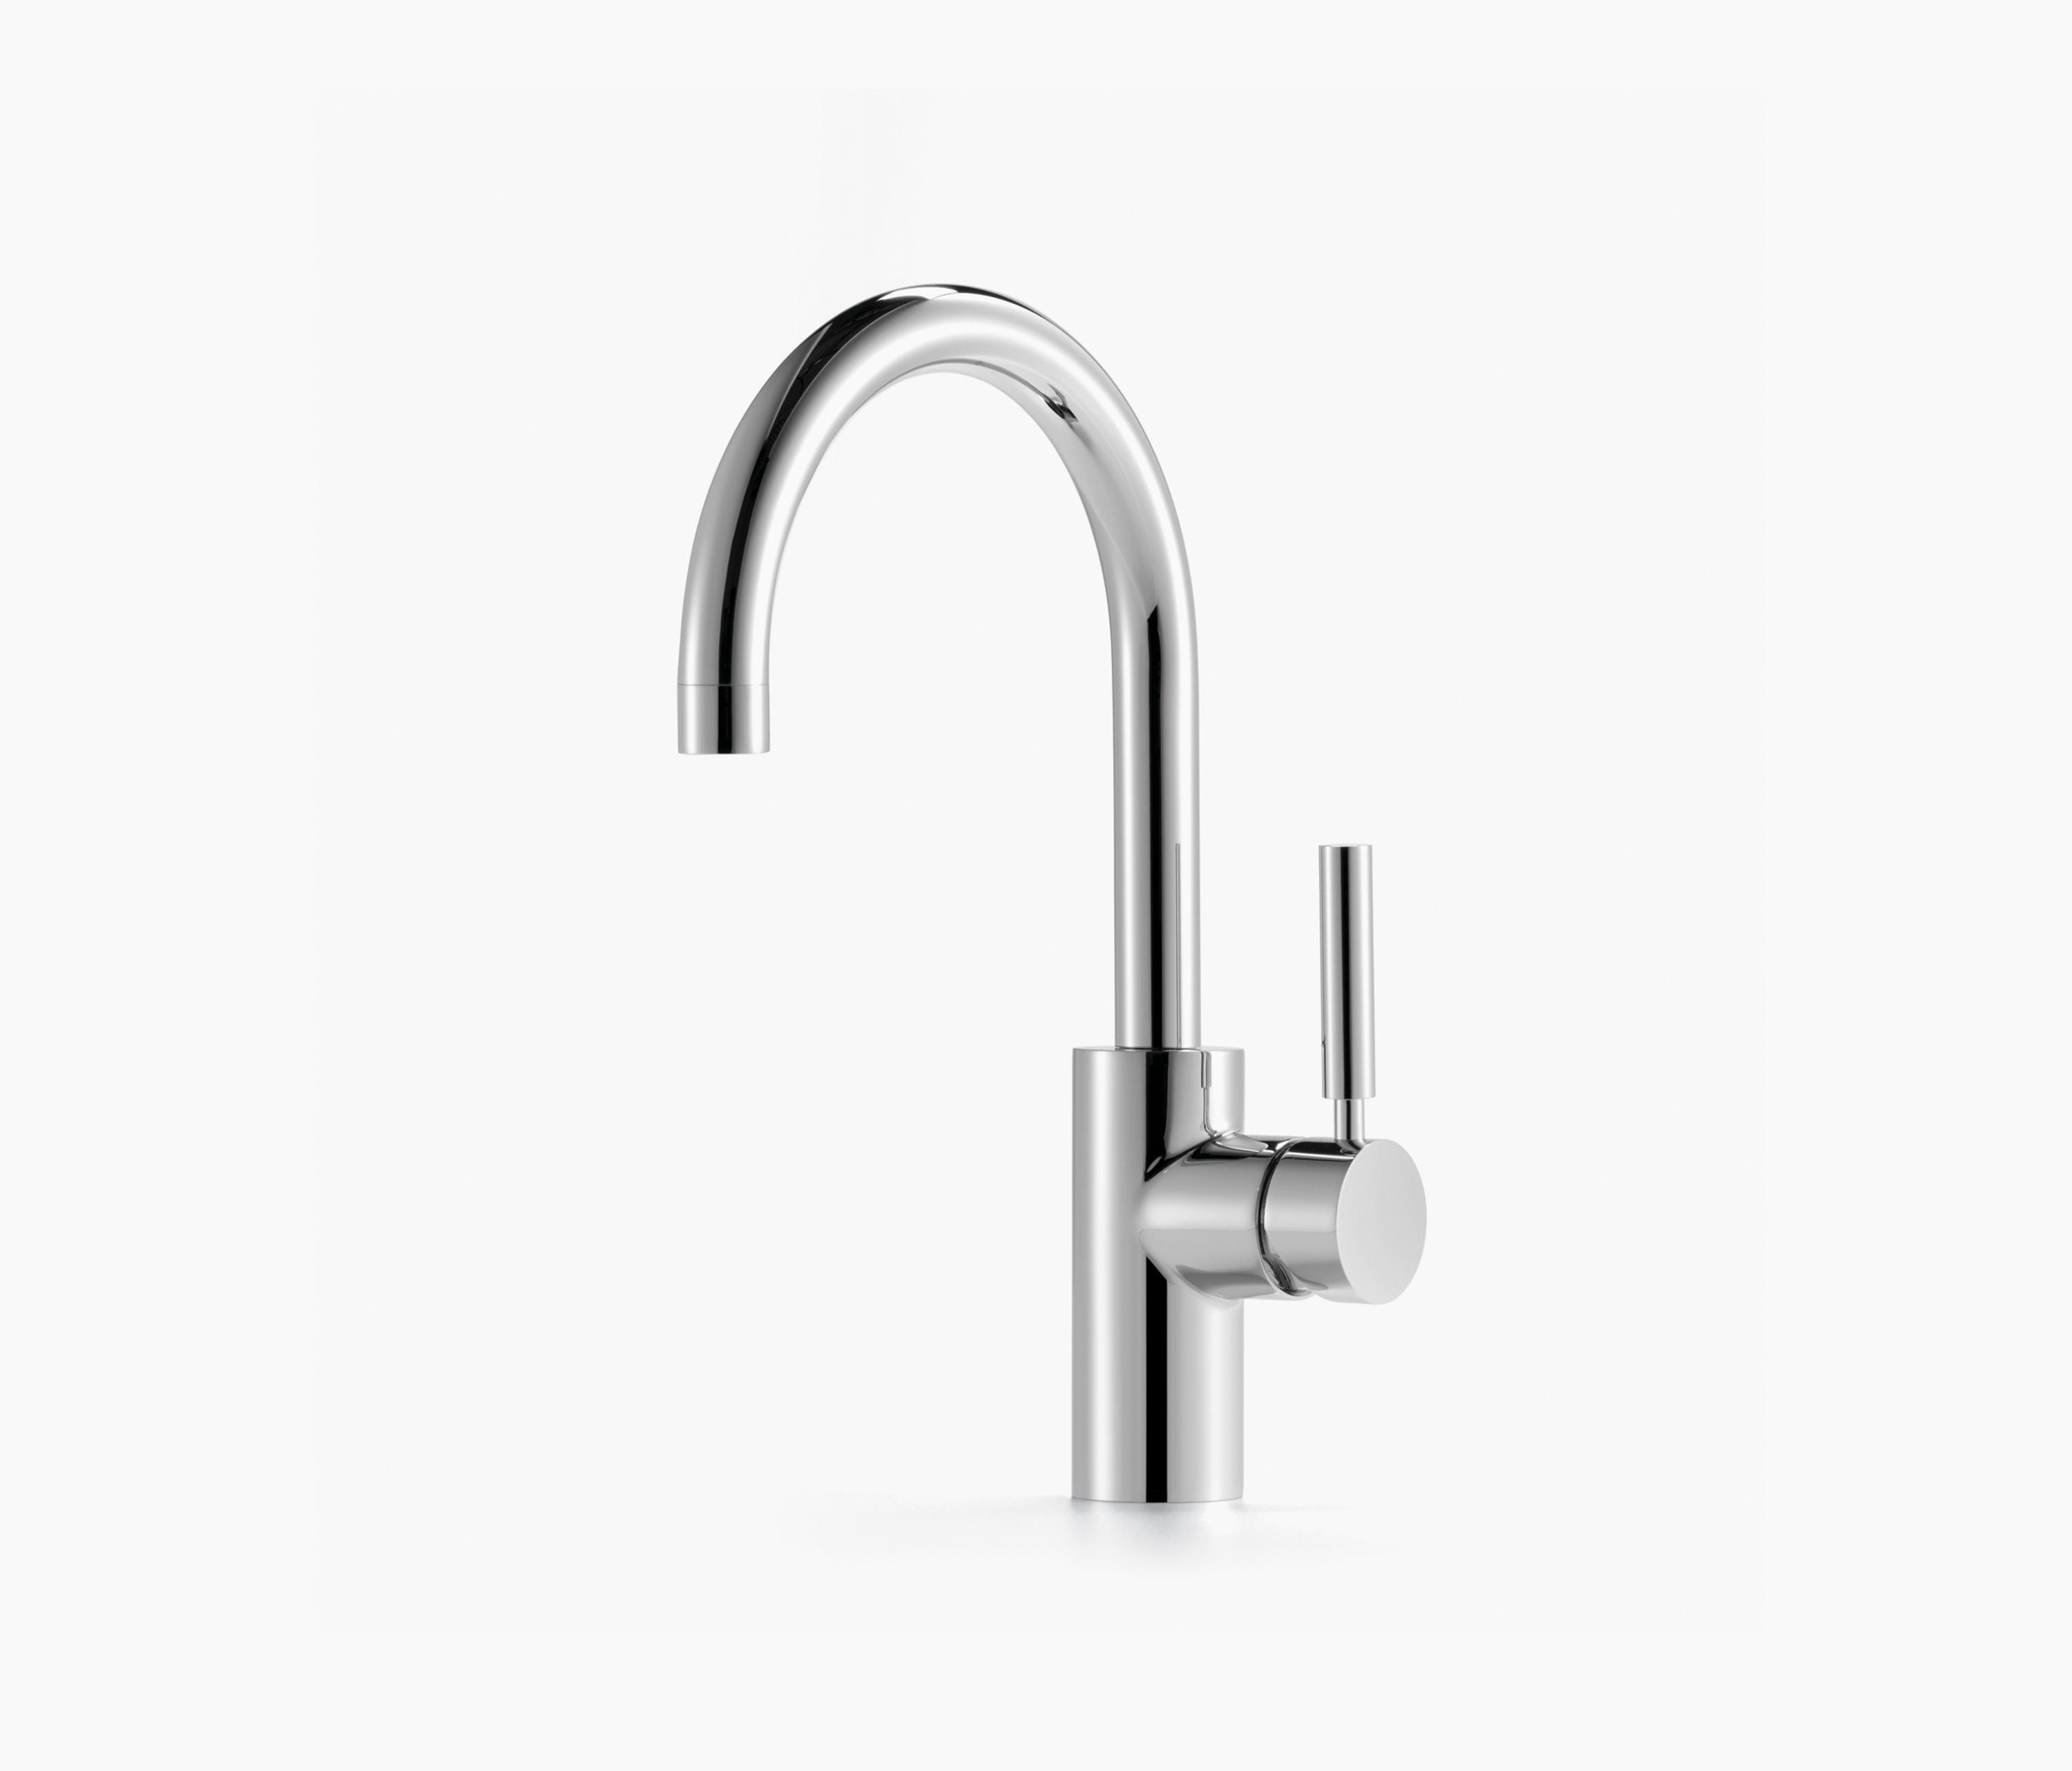 tara logic single lever basin mixer wash basin taps. Black Bedroom Furniture Sets. Home Design Ideas